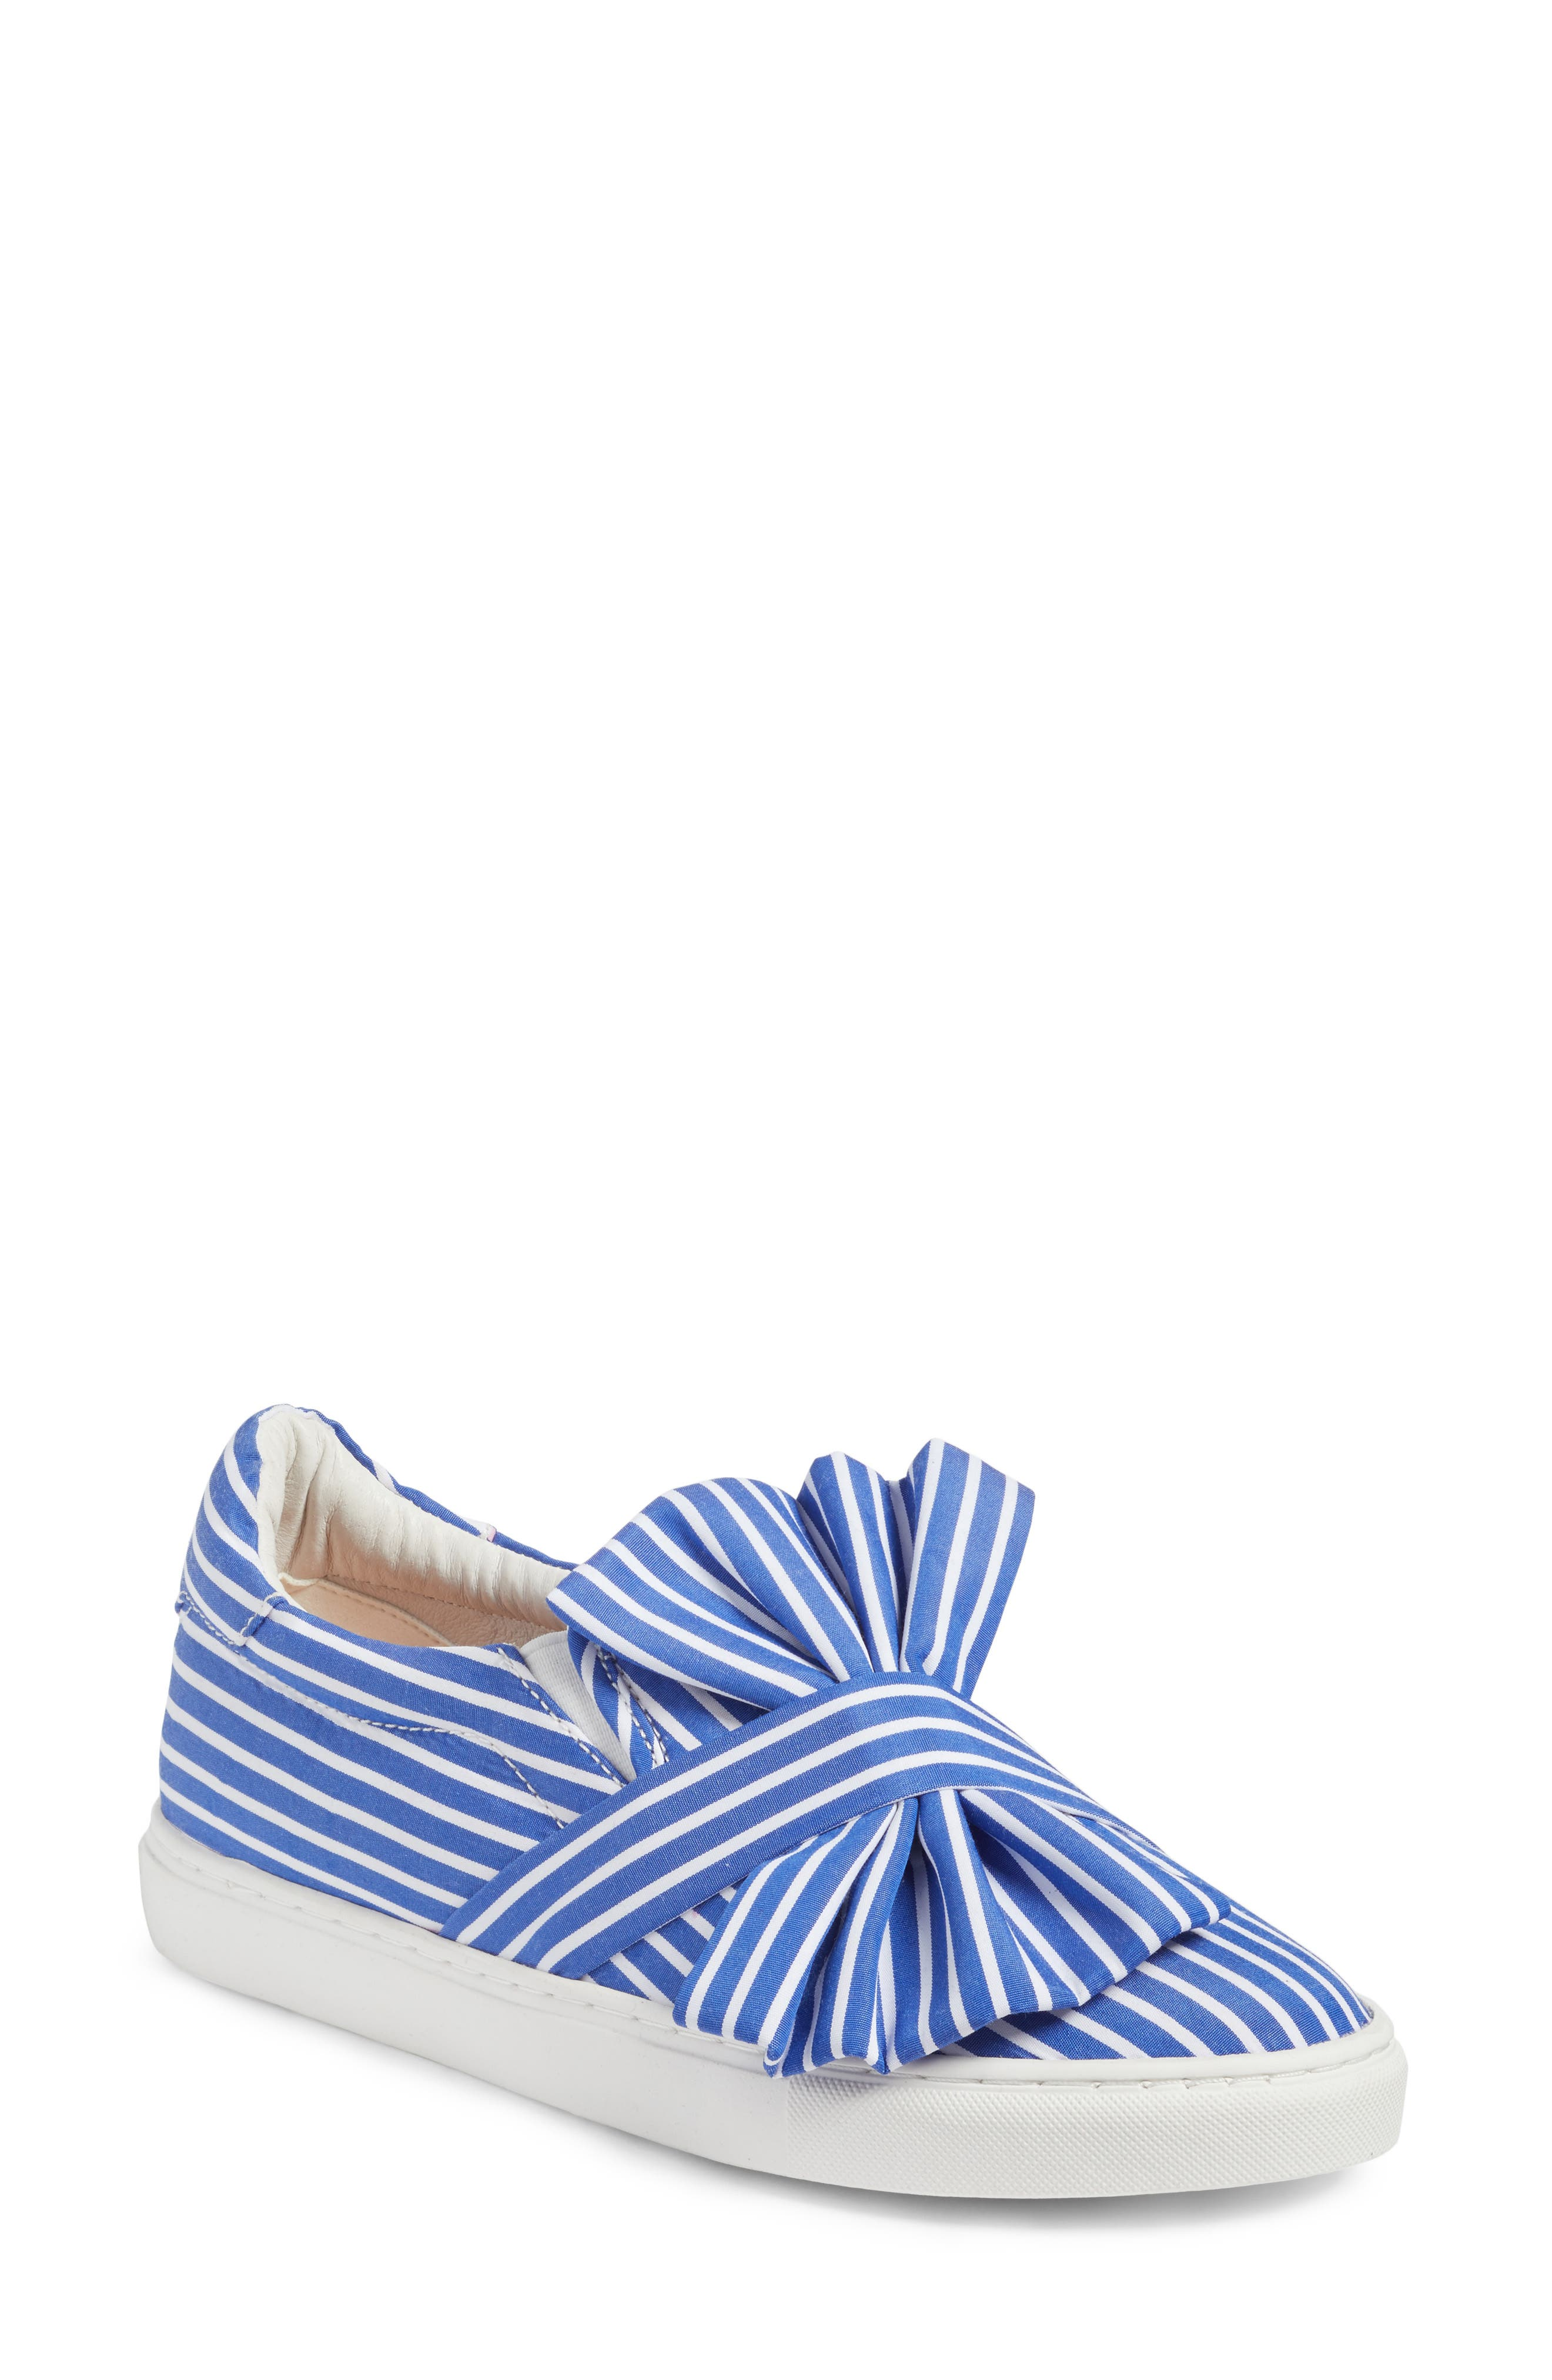 Mika Slip-On Sneaker,                         Main,                         color, Blue Shirting Fabric